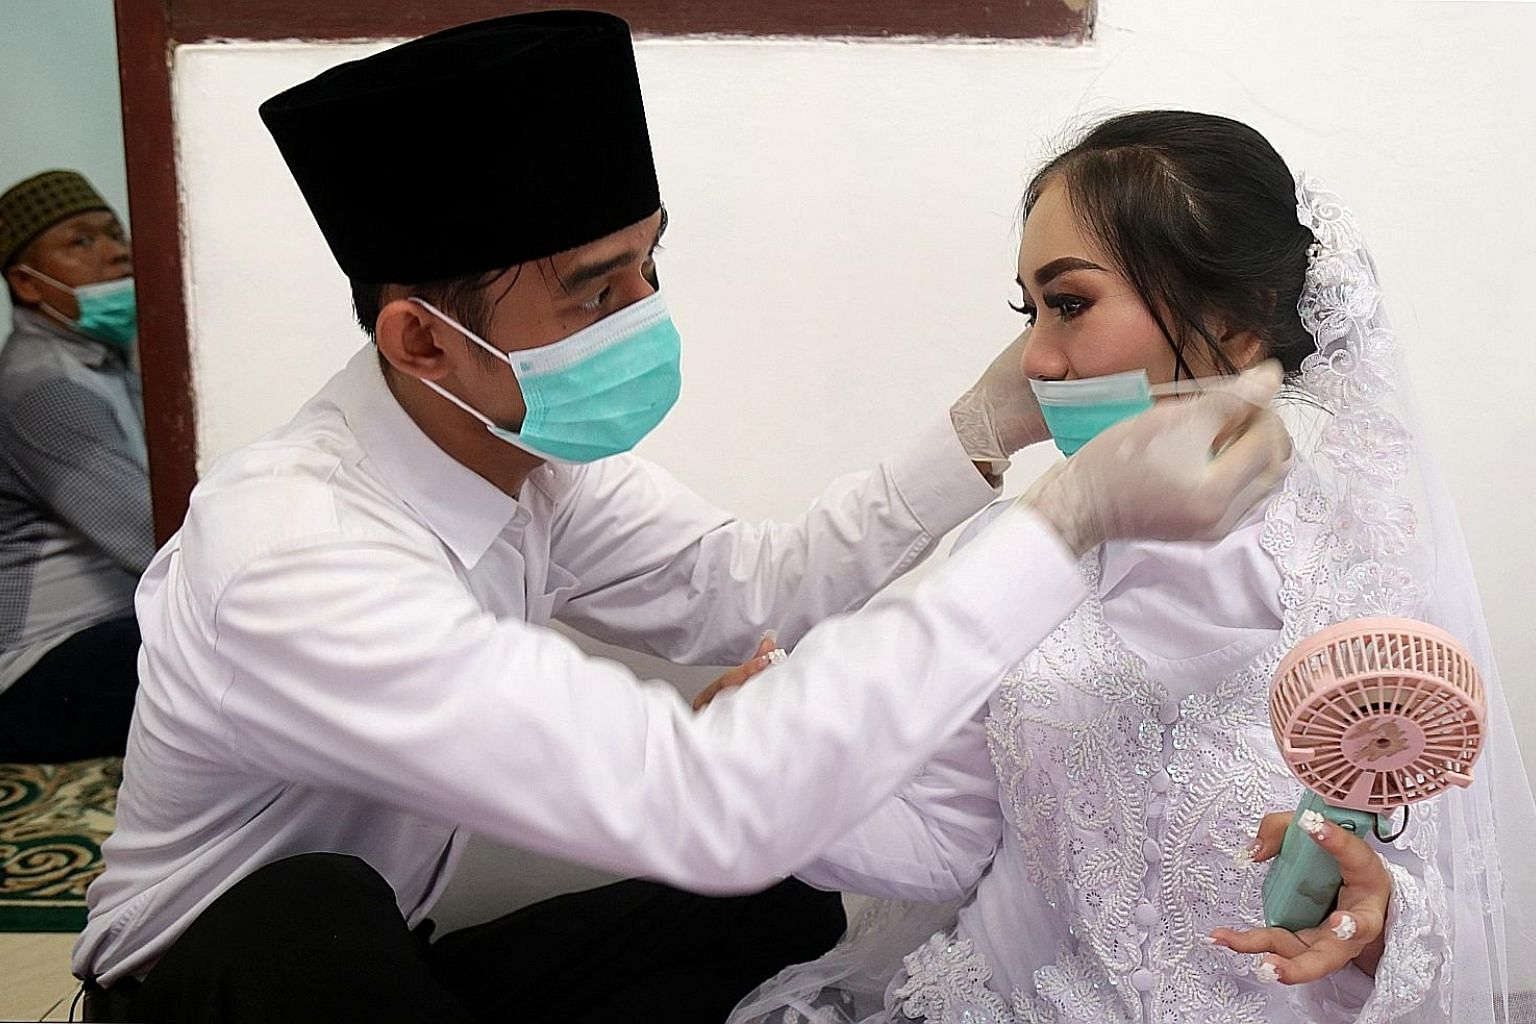 A groom puts a face mask on his bride before their wedding ceremony in Jakarta. The wedding proceeded on Saturday amid concerns about the coronavirus outbreak, which has led the government to consider a lockdown of the capital.